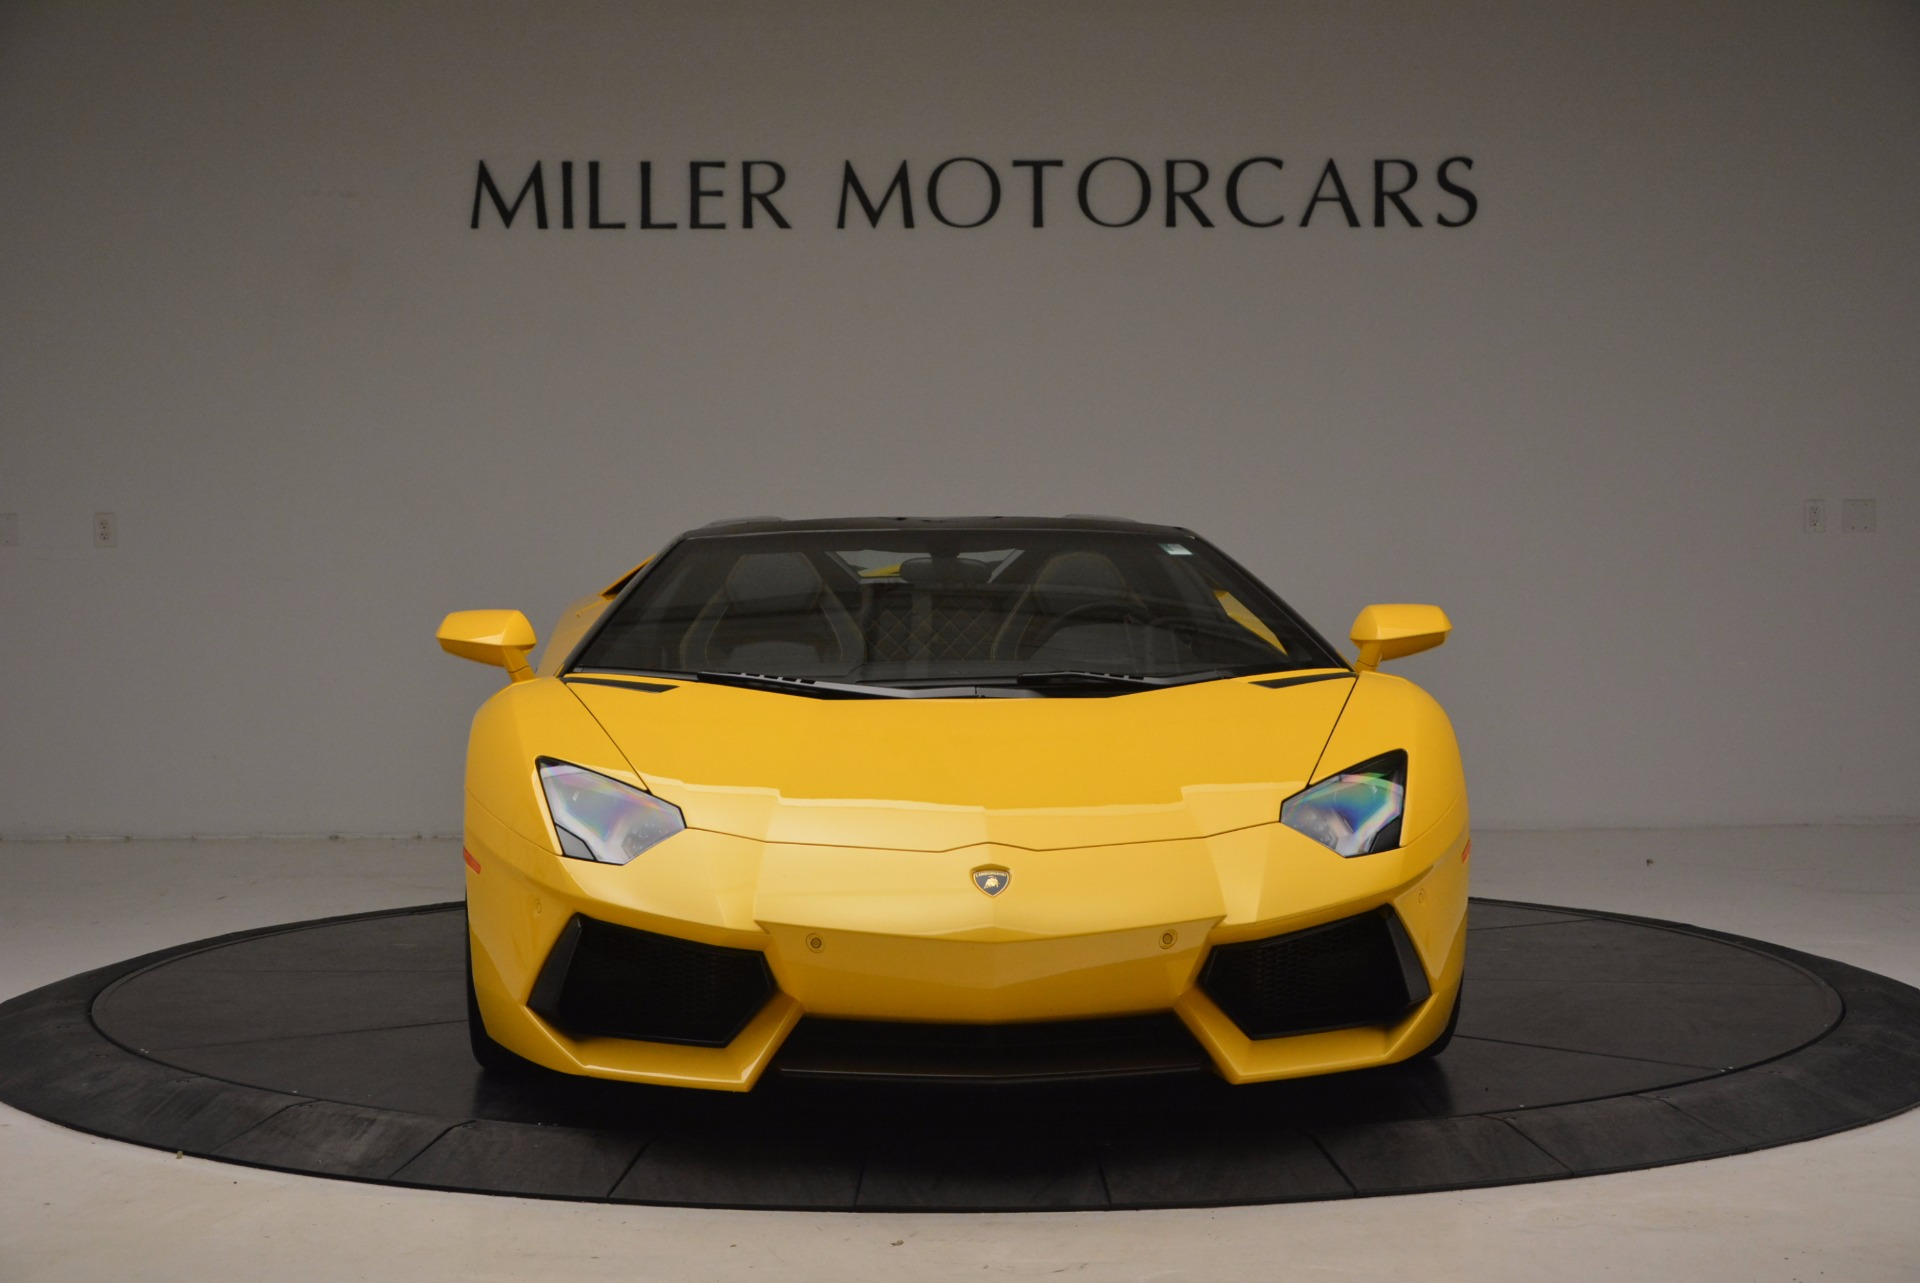 Used 2015 Lamborghini Aventador LP 700-4 Roadster For Sale In Westport, CT 1774_p13